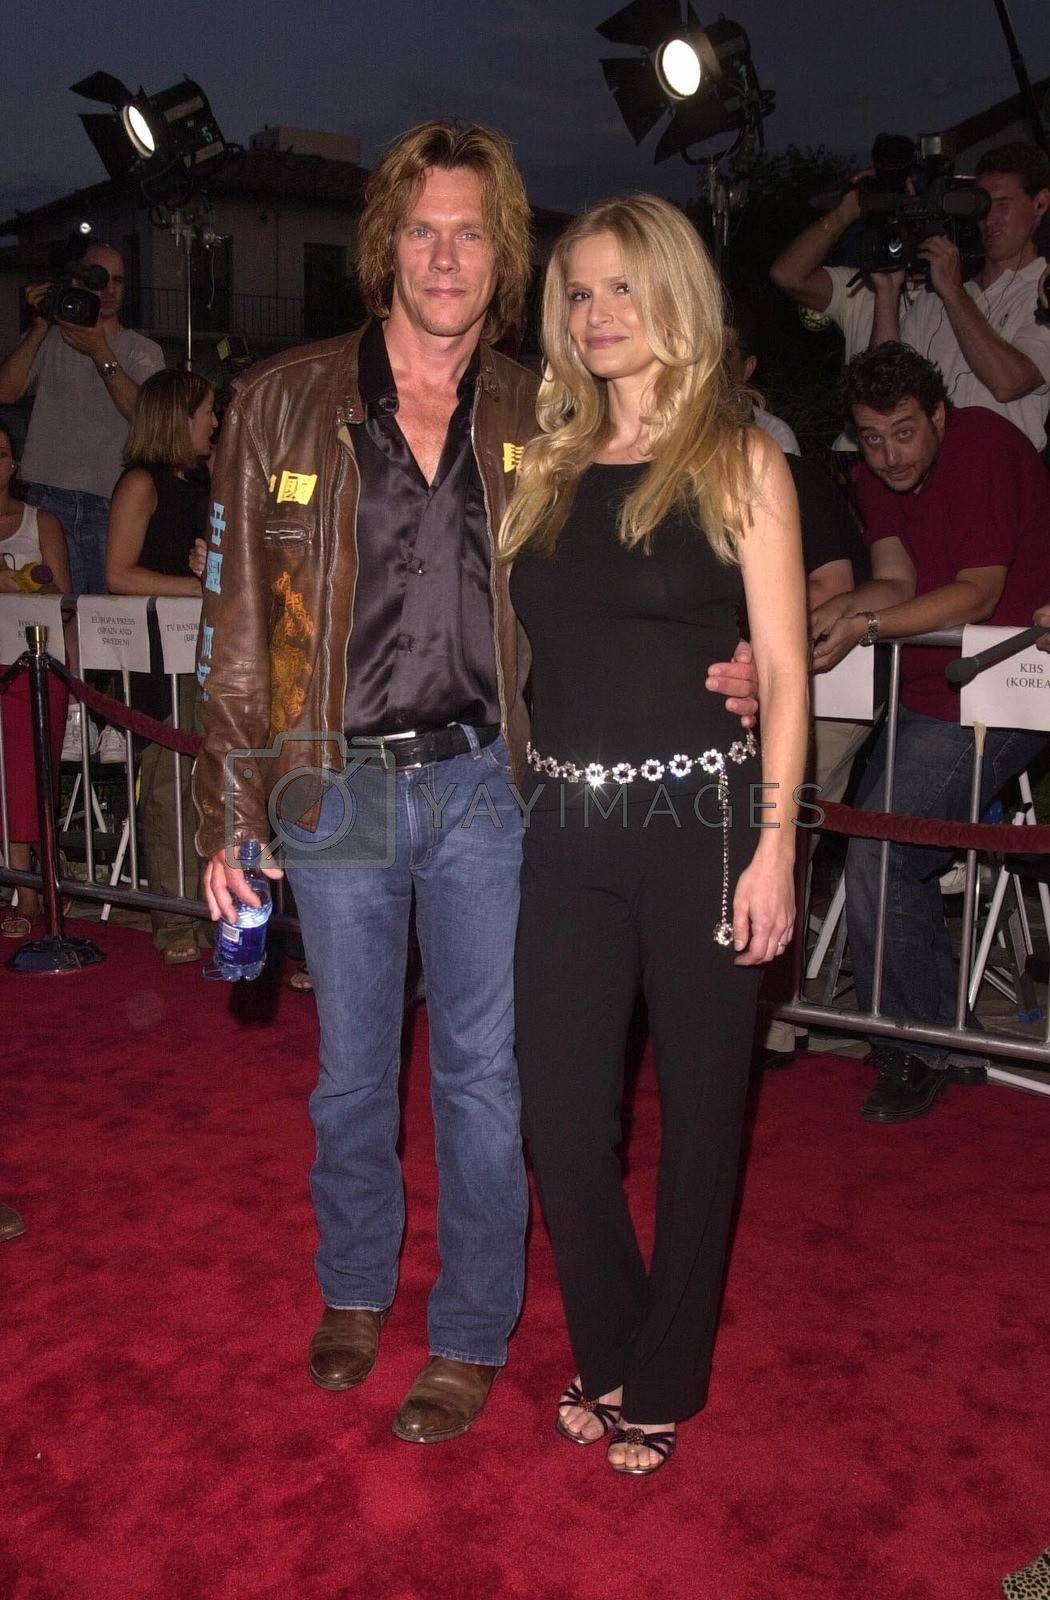 Kevin Bacon and Kyra Sedgwick at the premiere of Hollow Man in Westwood. 08-02-00